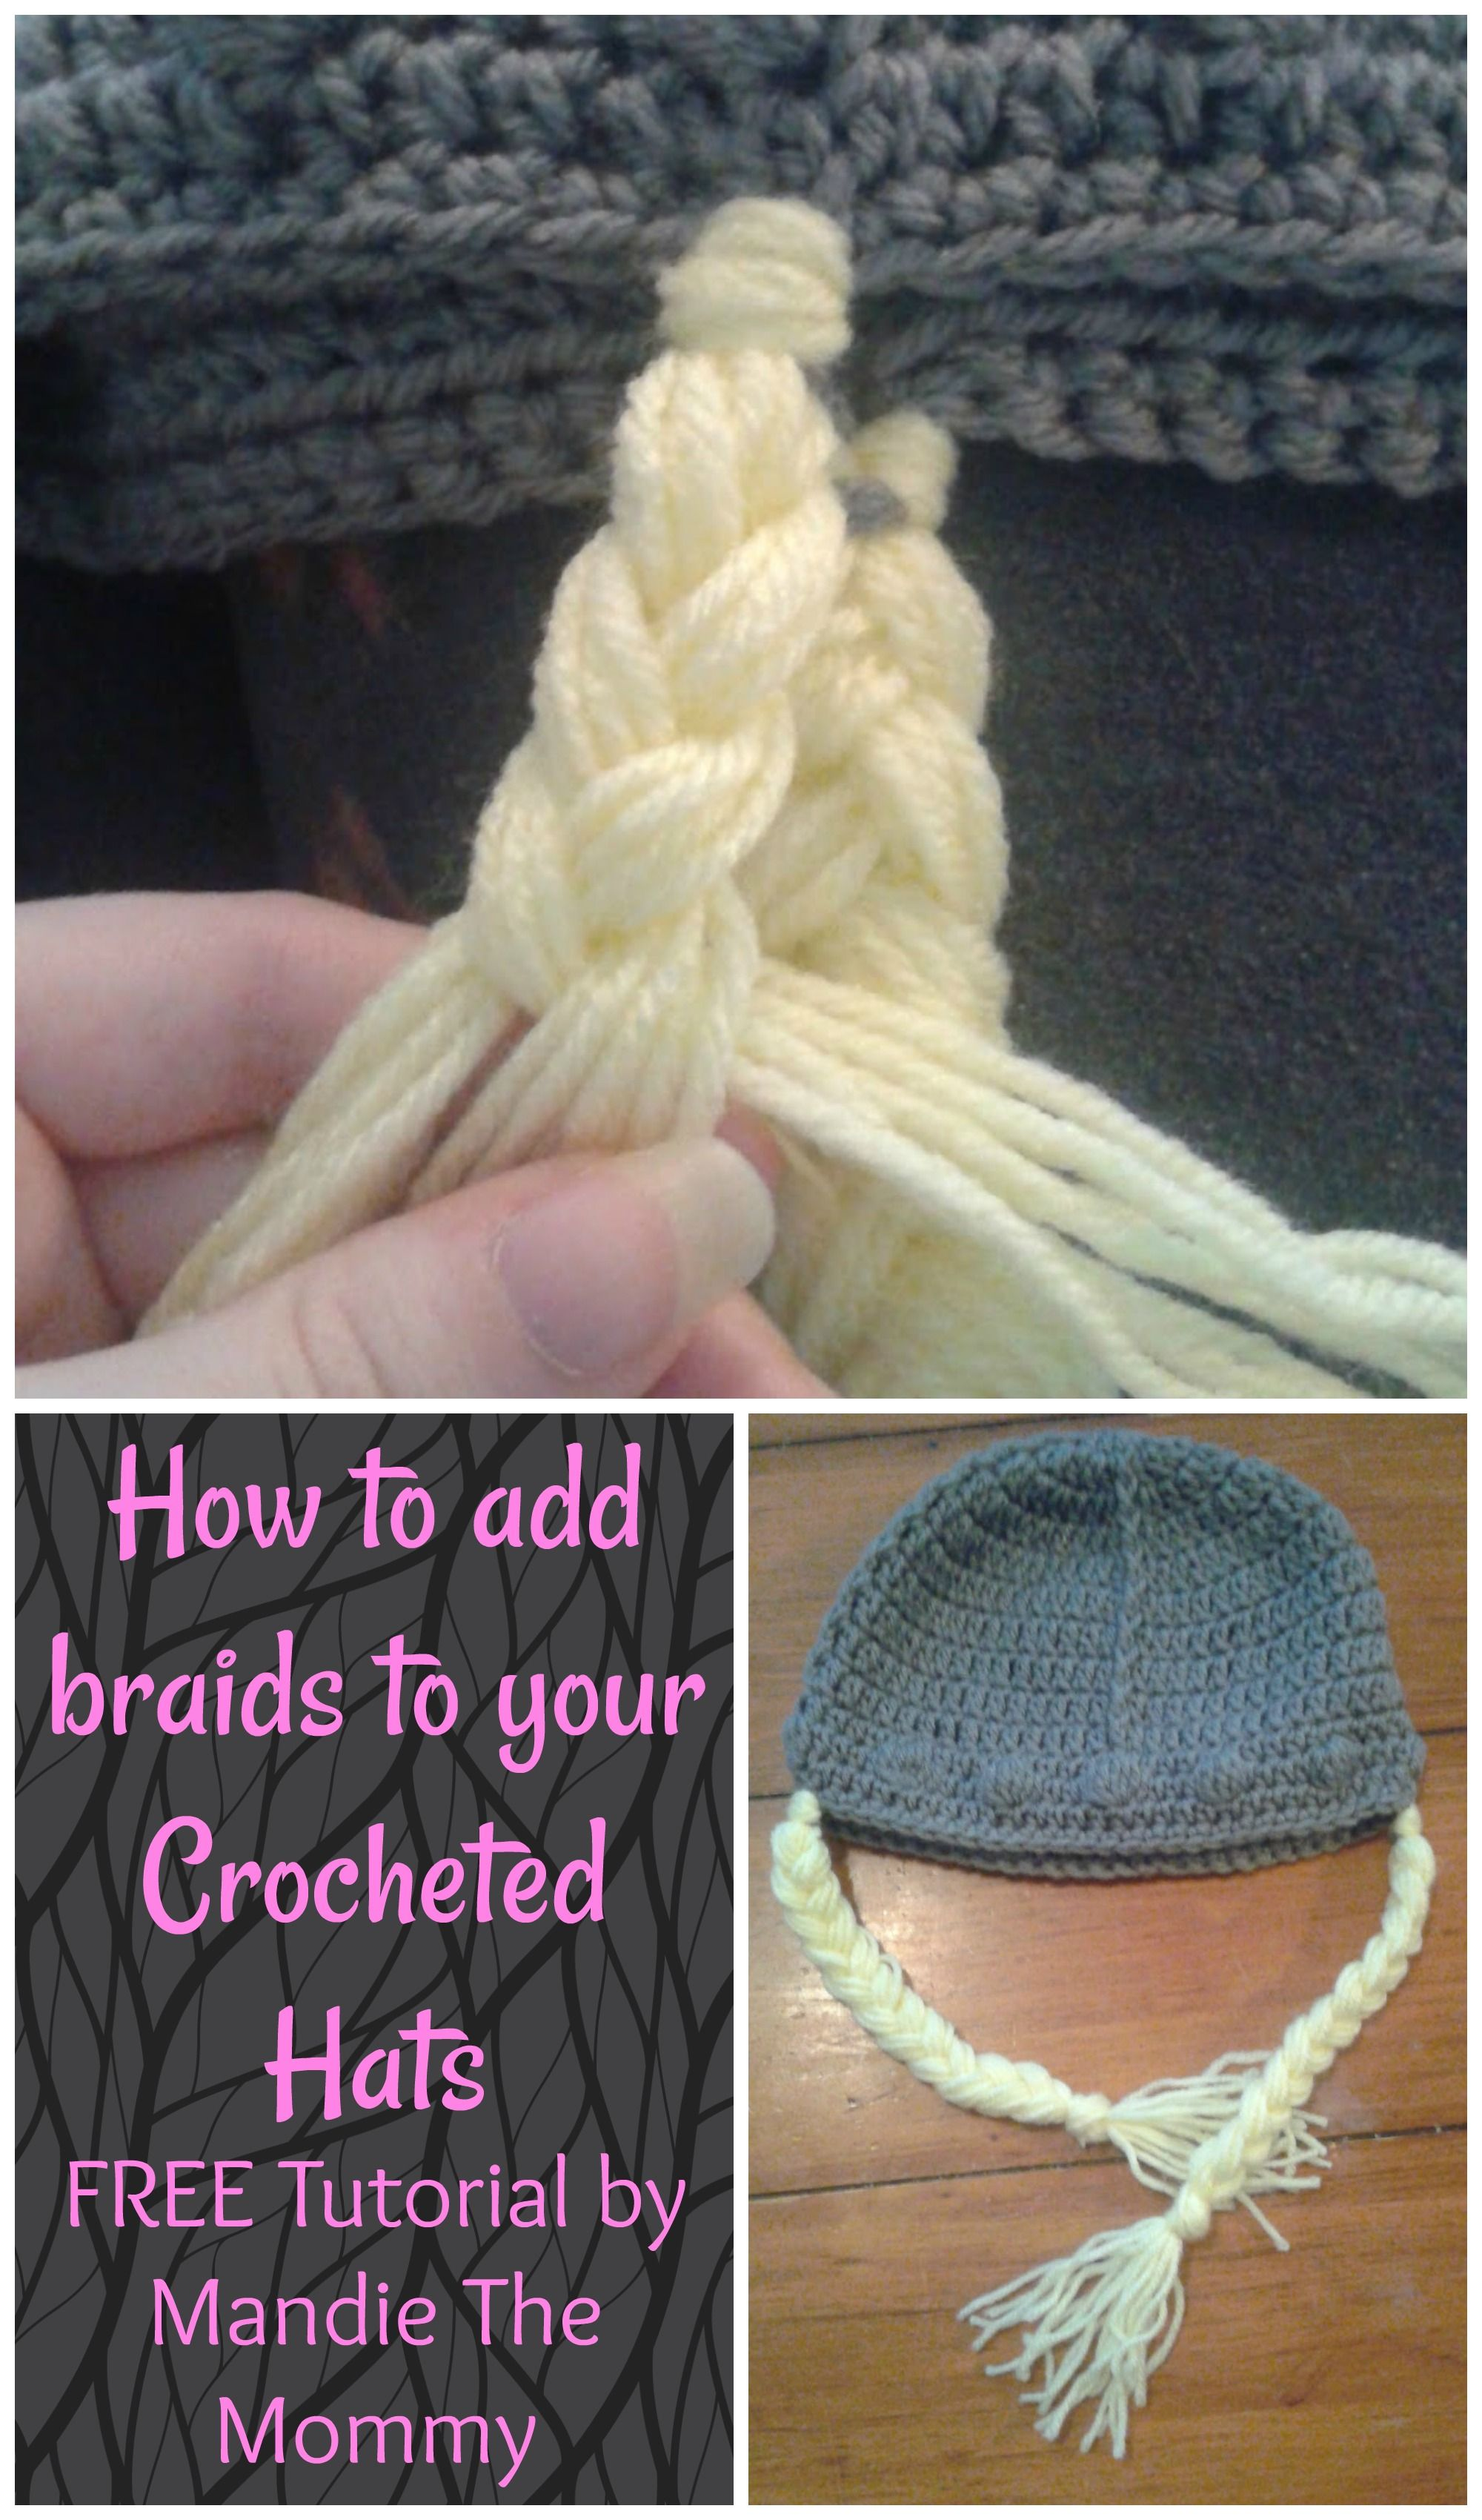 Finish your crocheted hats with adorable braids using the FREE ...